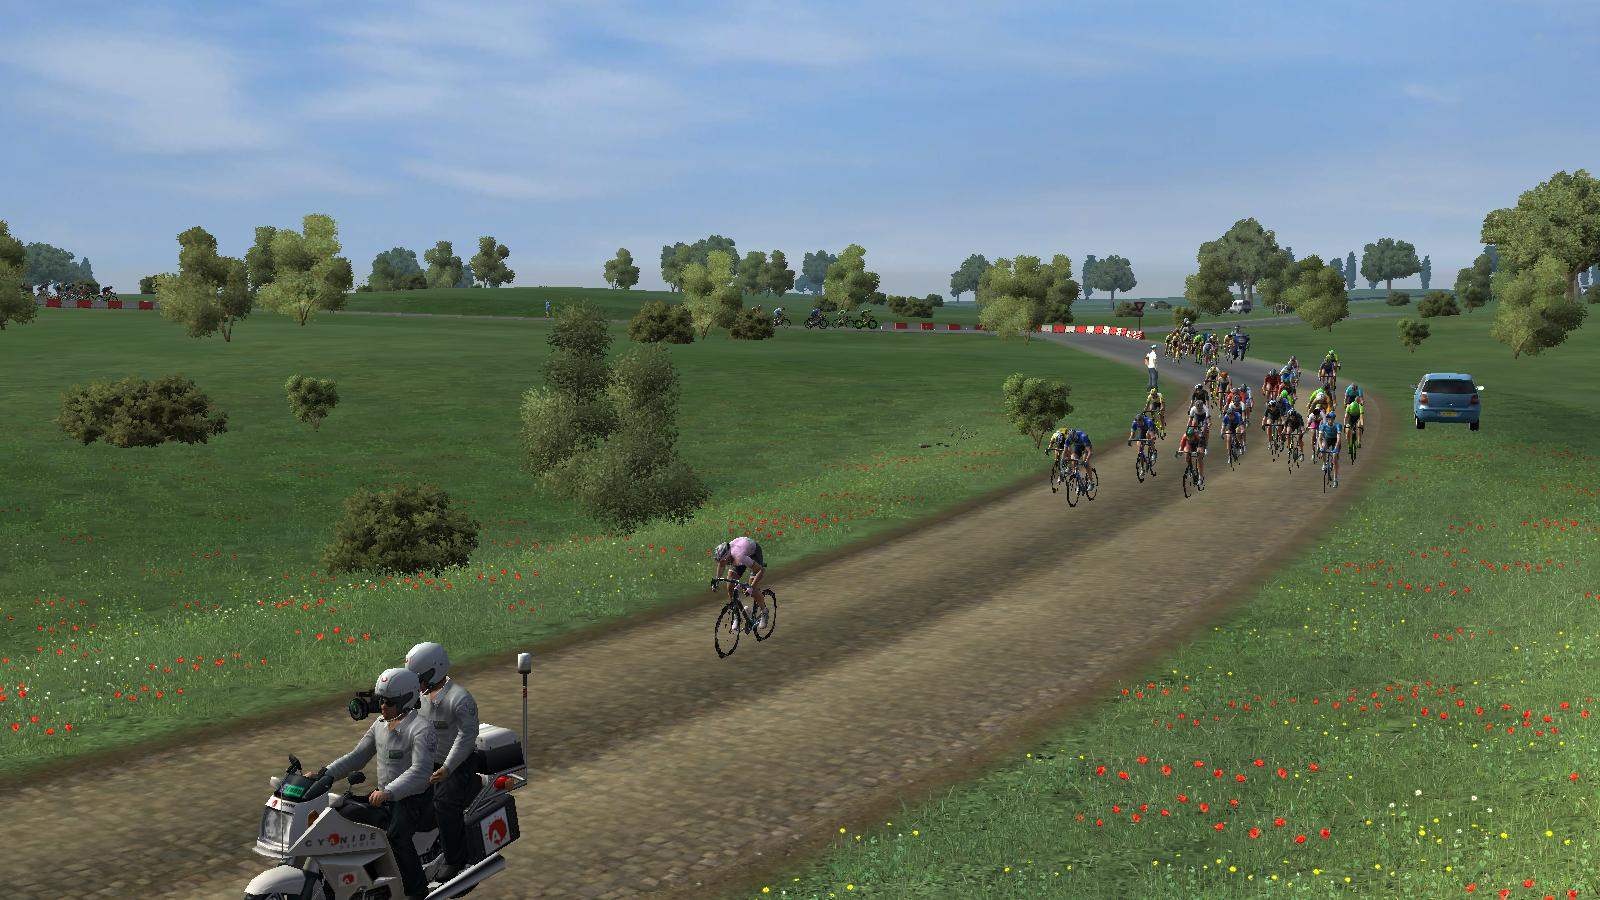 pcmdaily.com/images/mg/2019/Races/PTHC/Rheden/24.jpg